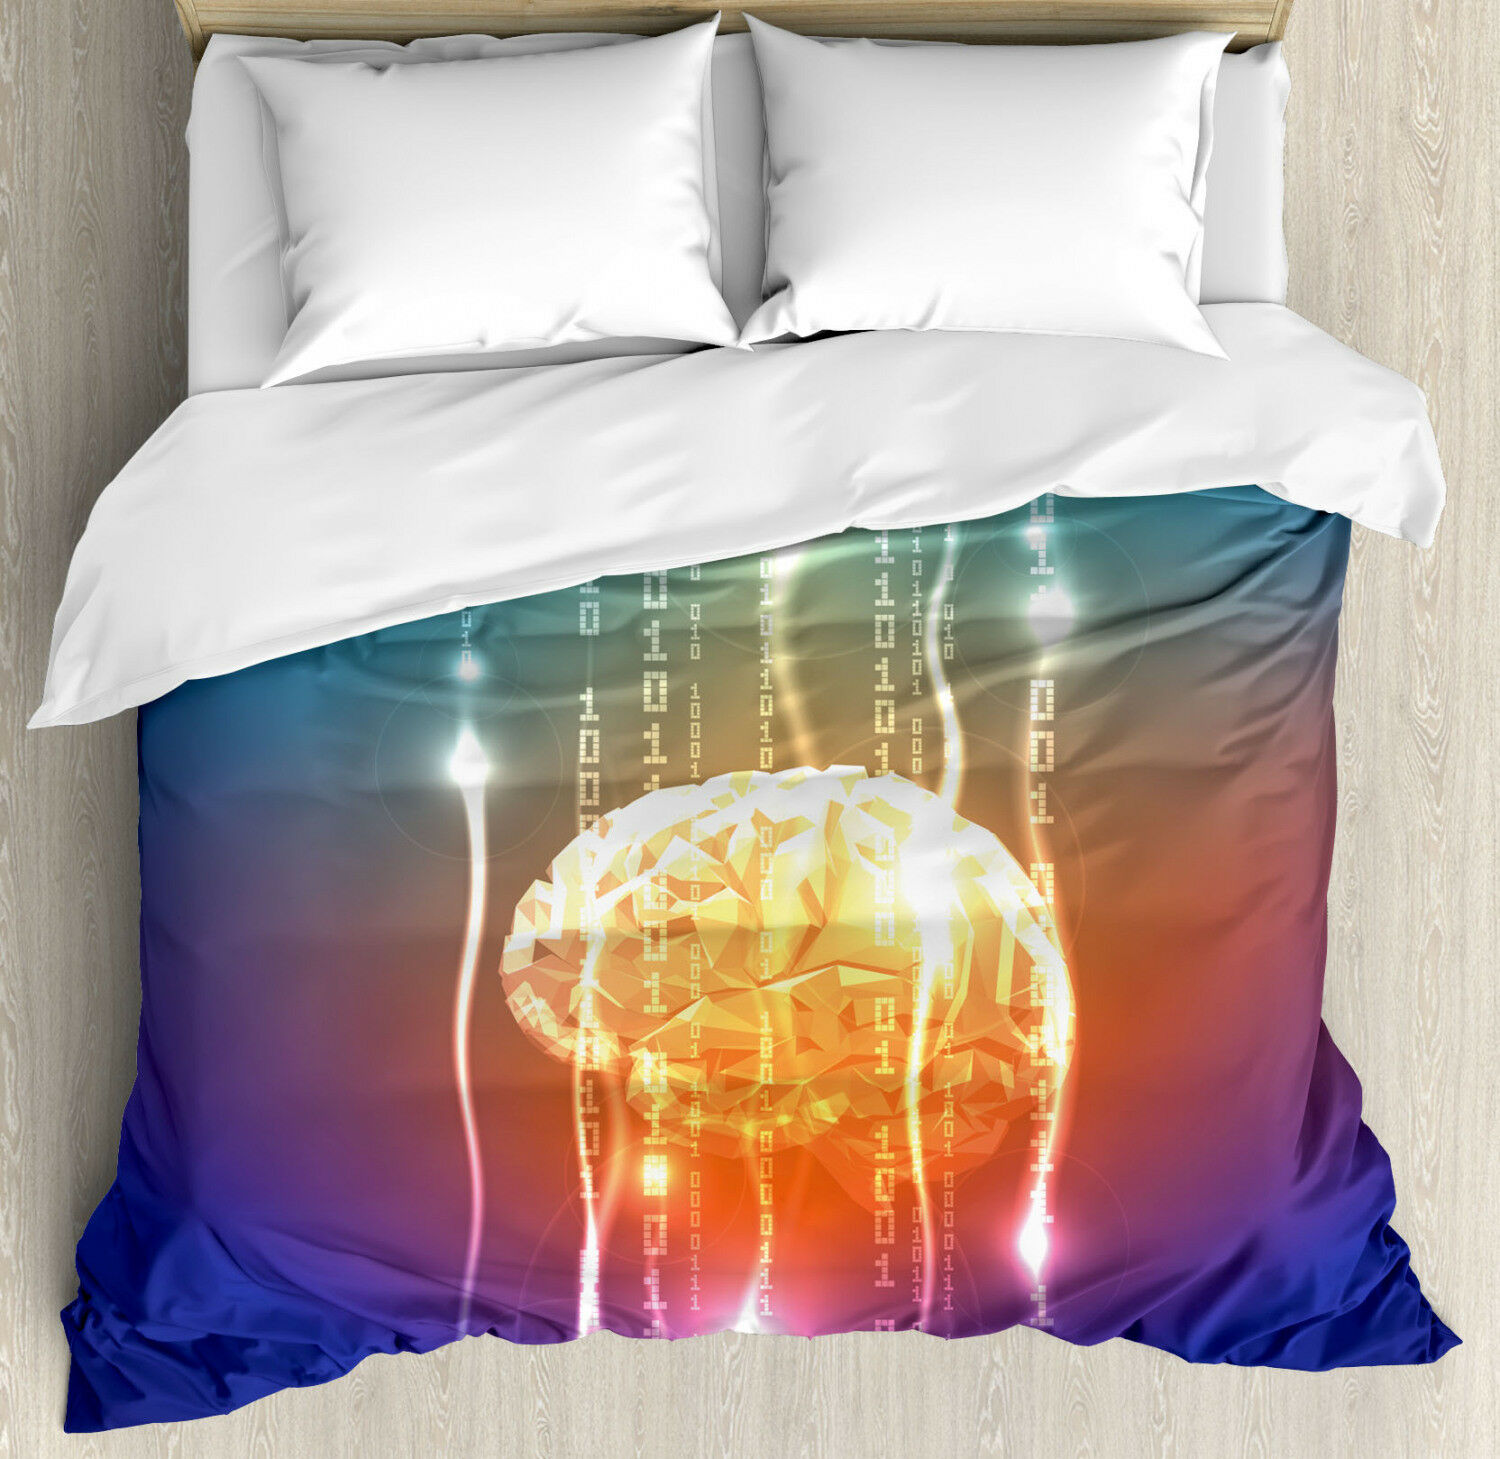 Fantasy Duvet Cover Set with Pillow Shams Abstract Binary Digit Print